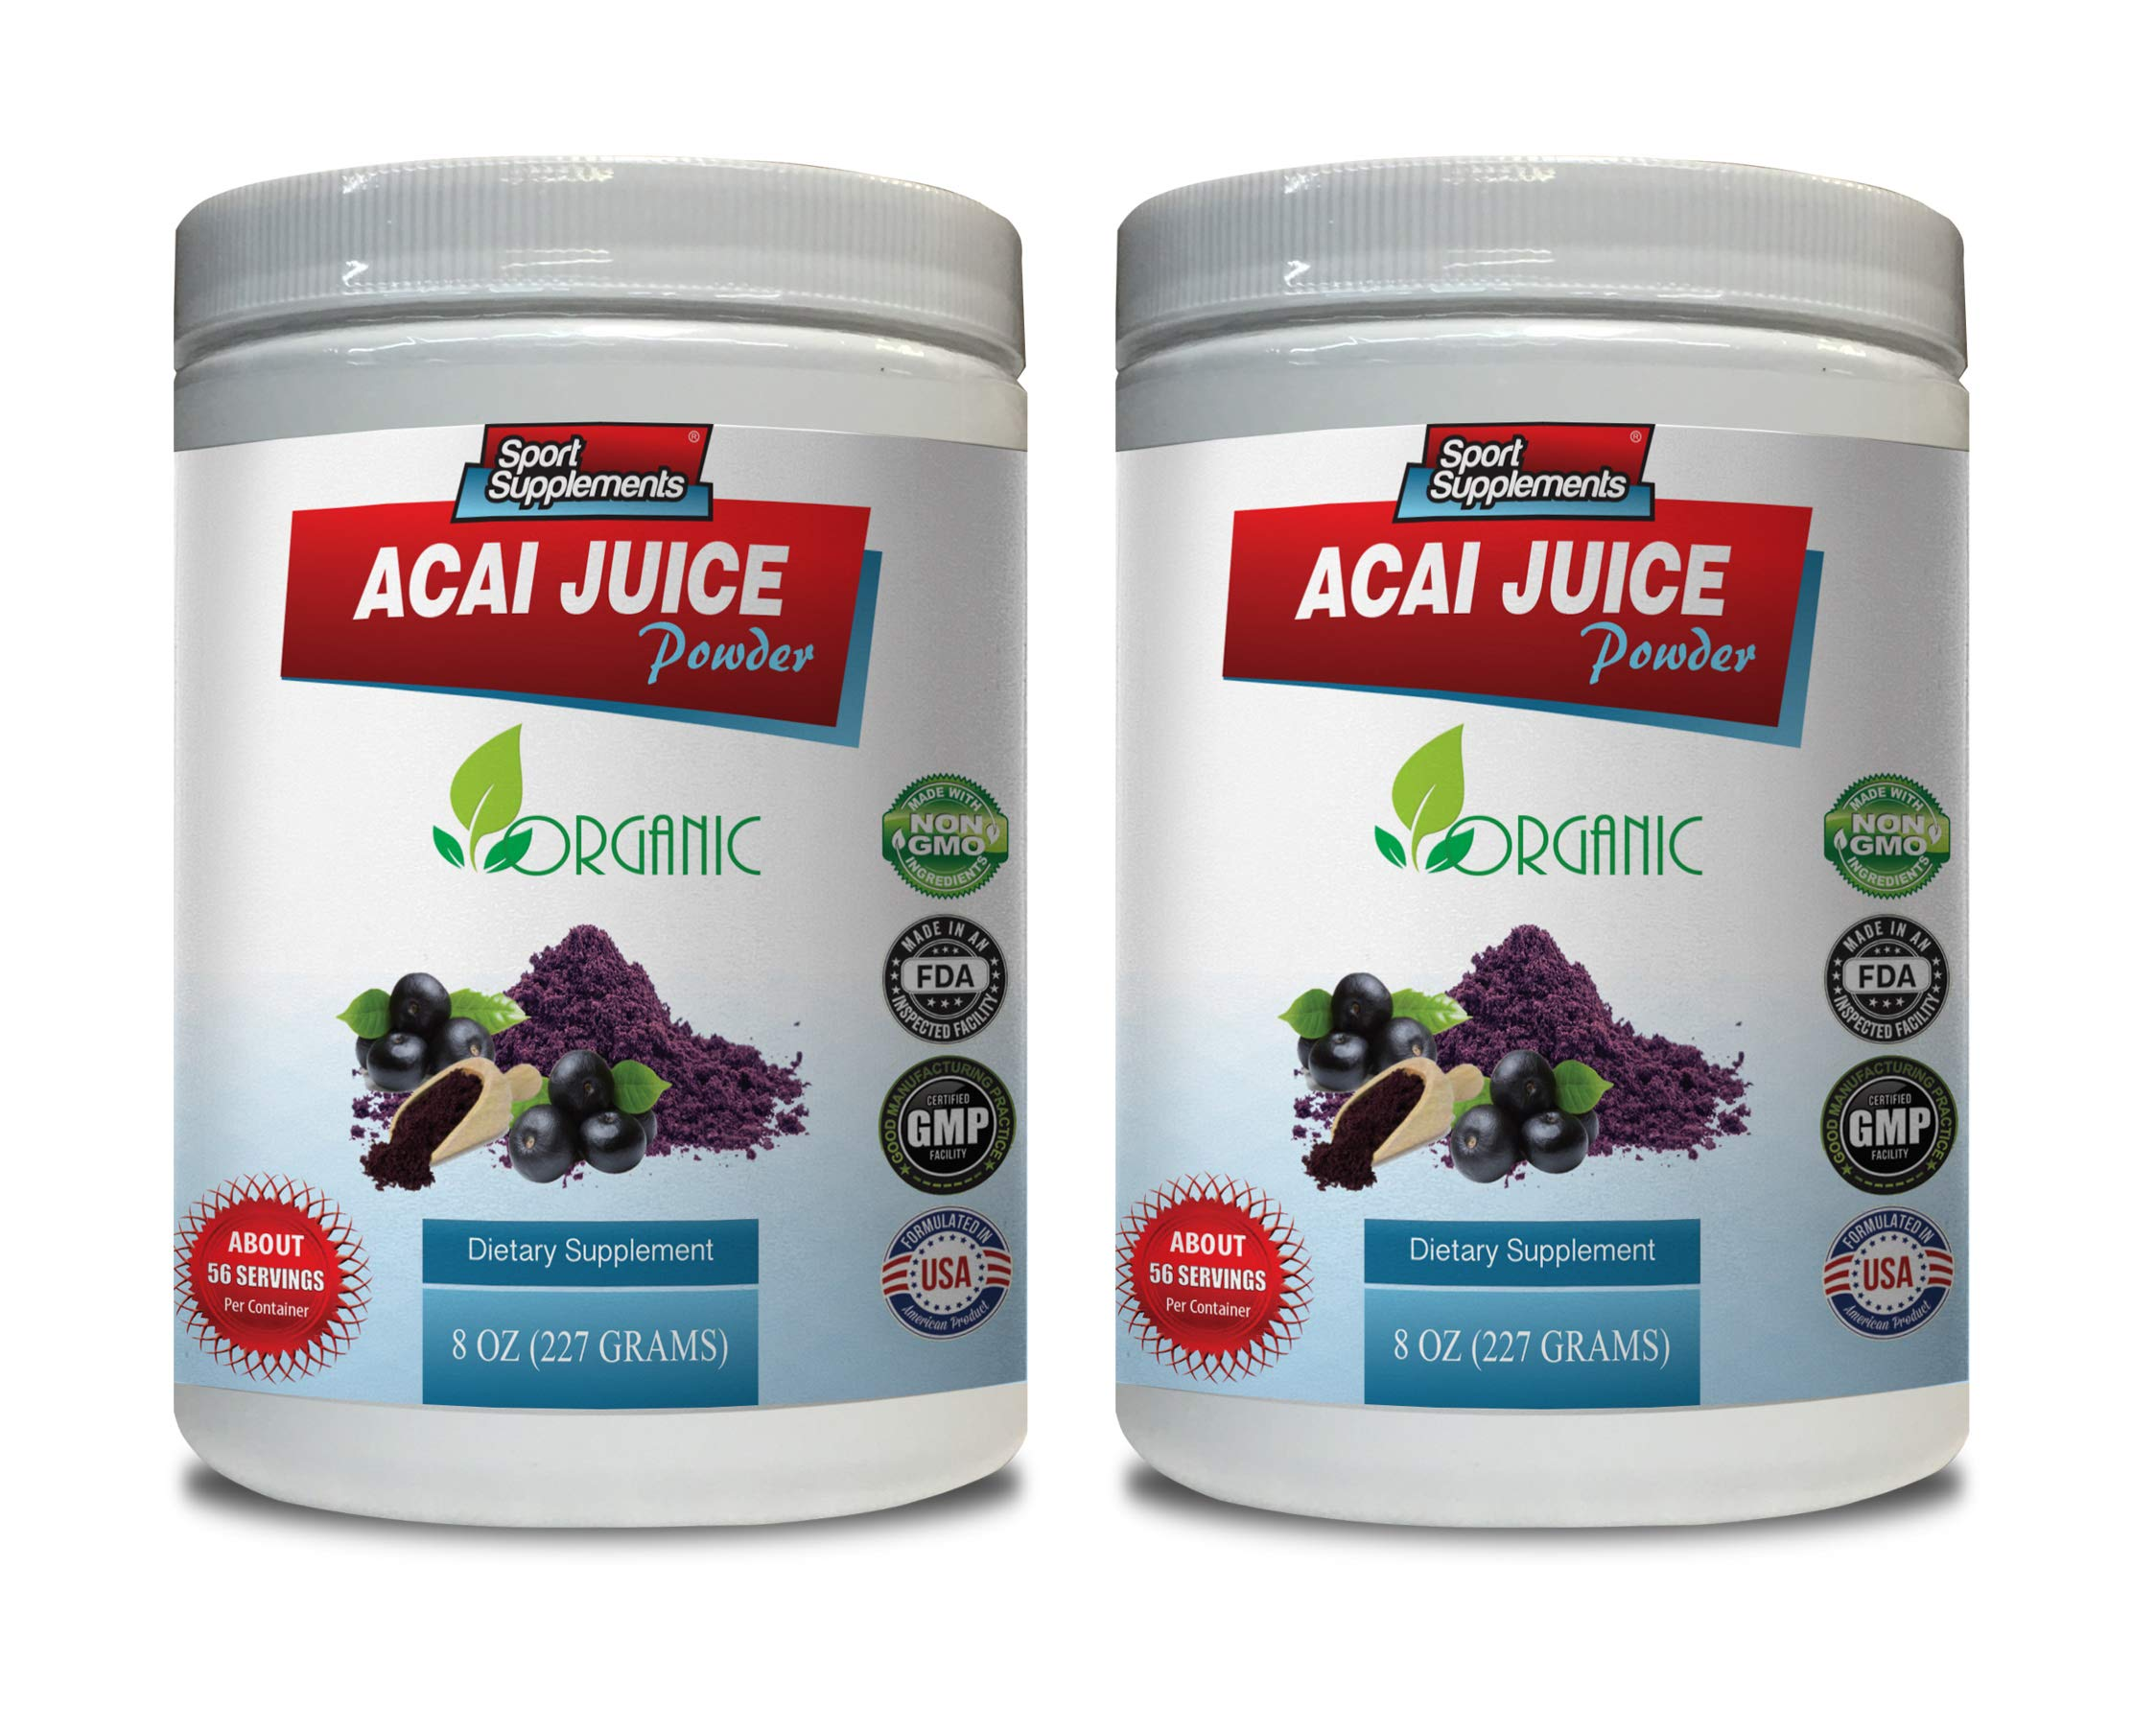 Energy Support Powder - ACAI Juice Powder - Organic Dietary Supplement - acai Energy Powder - 2 Cans 16 OZ (130 Servings)